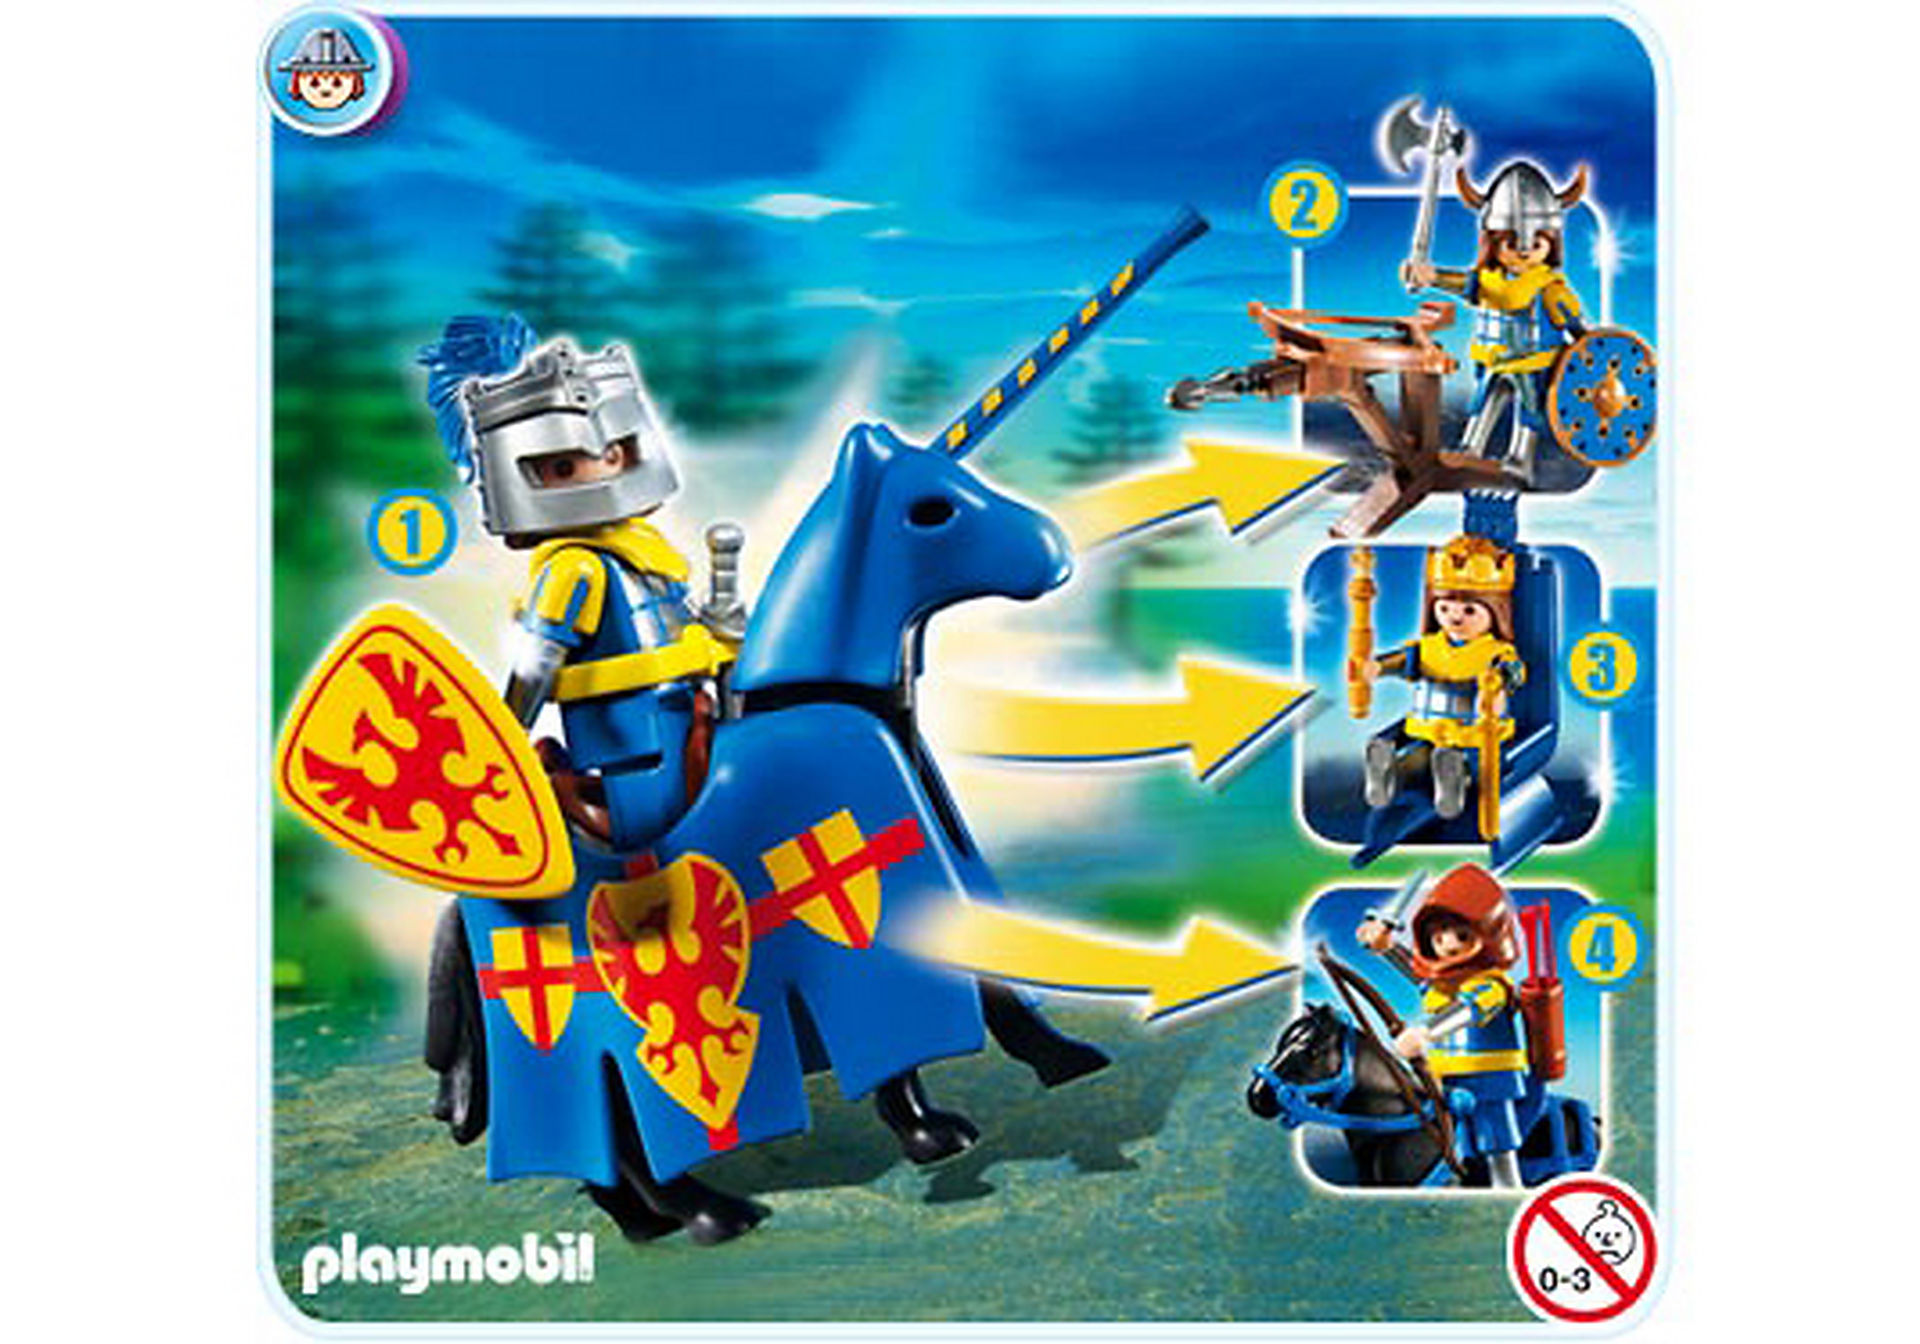 http://media.playmobil.com/i/playmobil/4339-A_product_detail/MultiSet Jungen